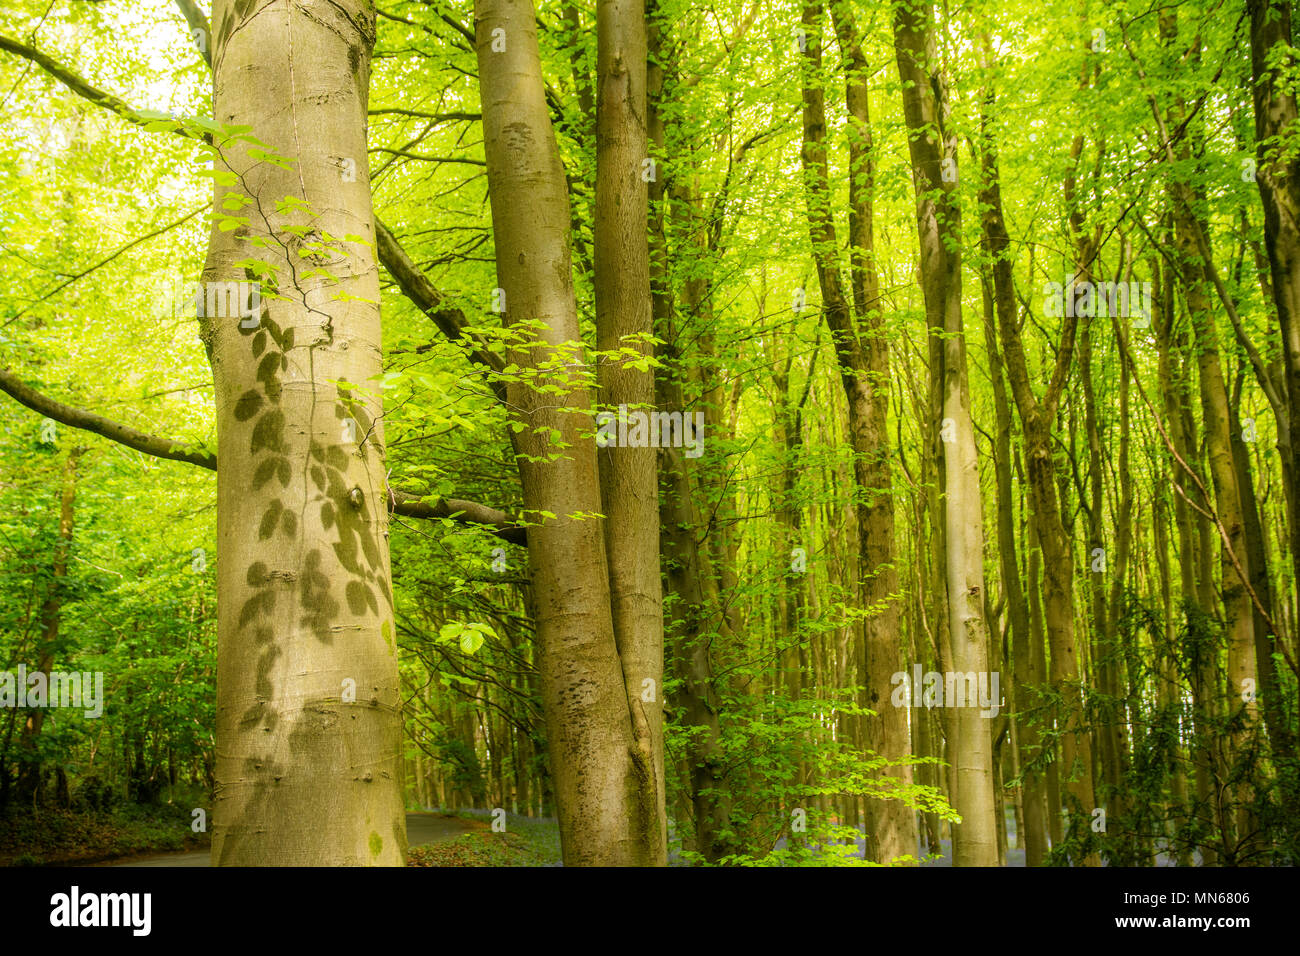 Leaves giving shaow patterns accross the tree - Stock Image